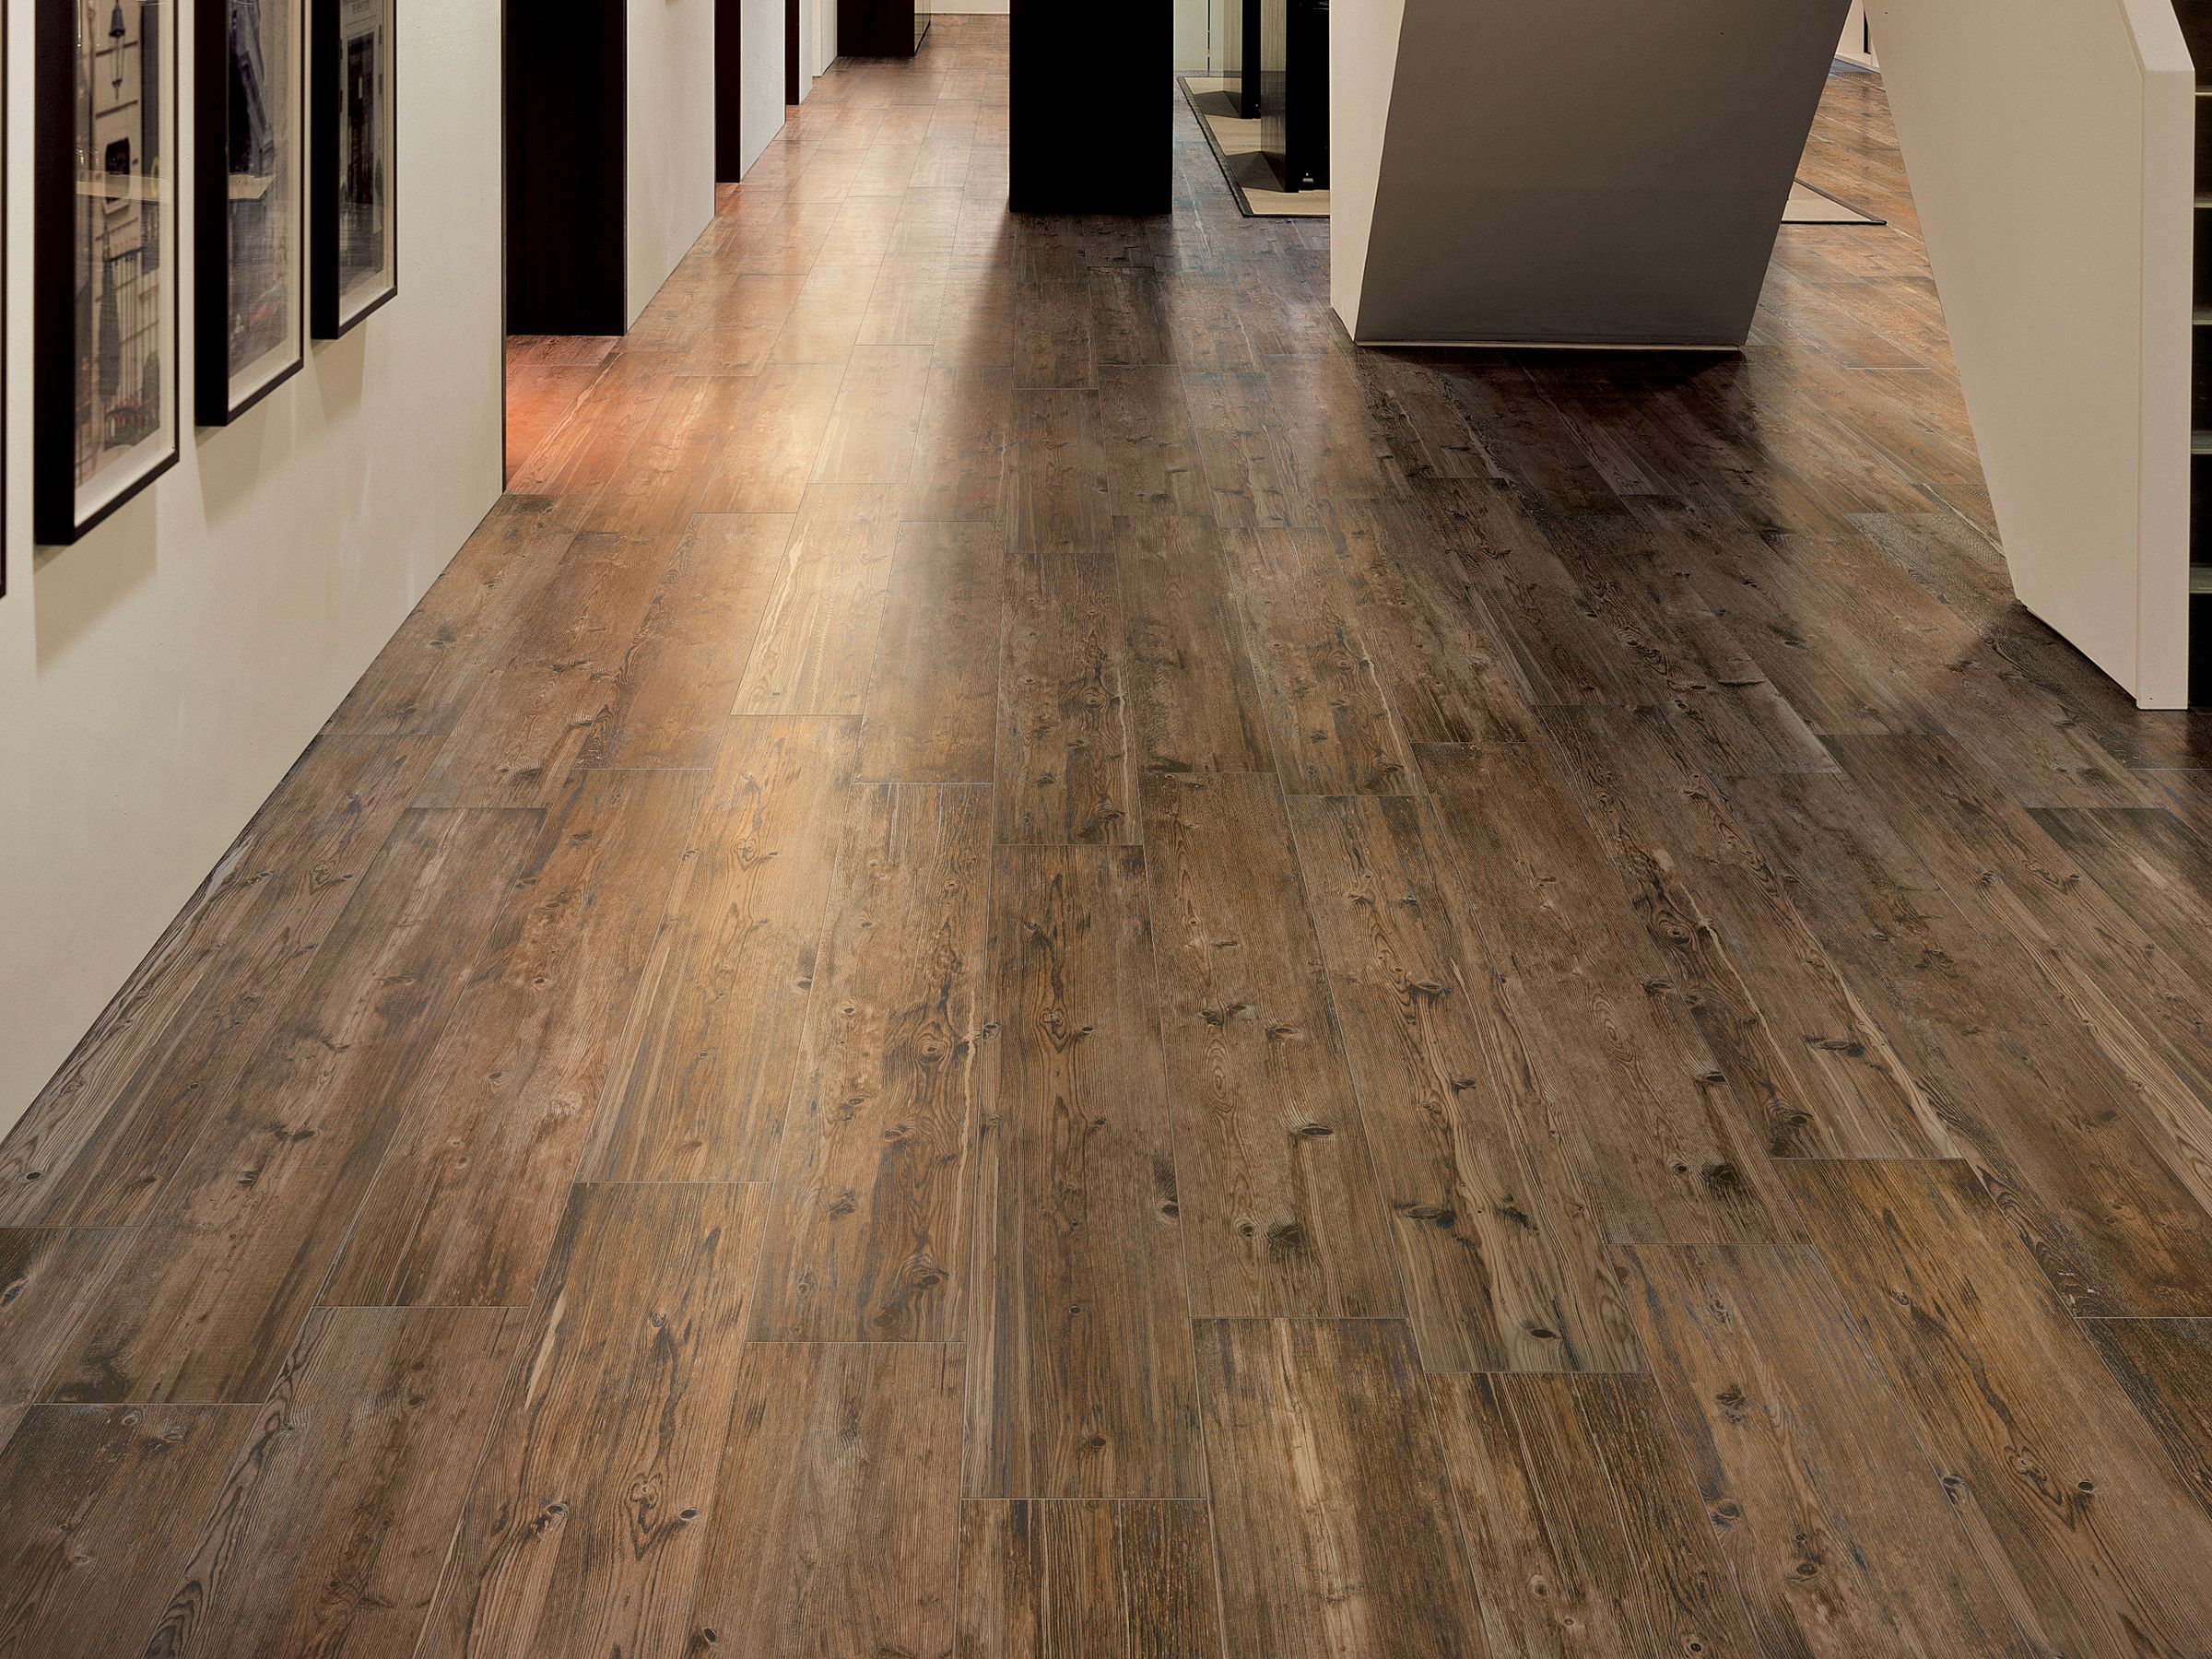 Wood effect floor tiles google keress wood effect floor tiles wood effect floor tiles google keress dailygadgetfo Images